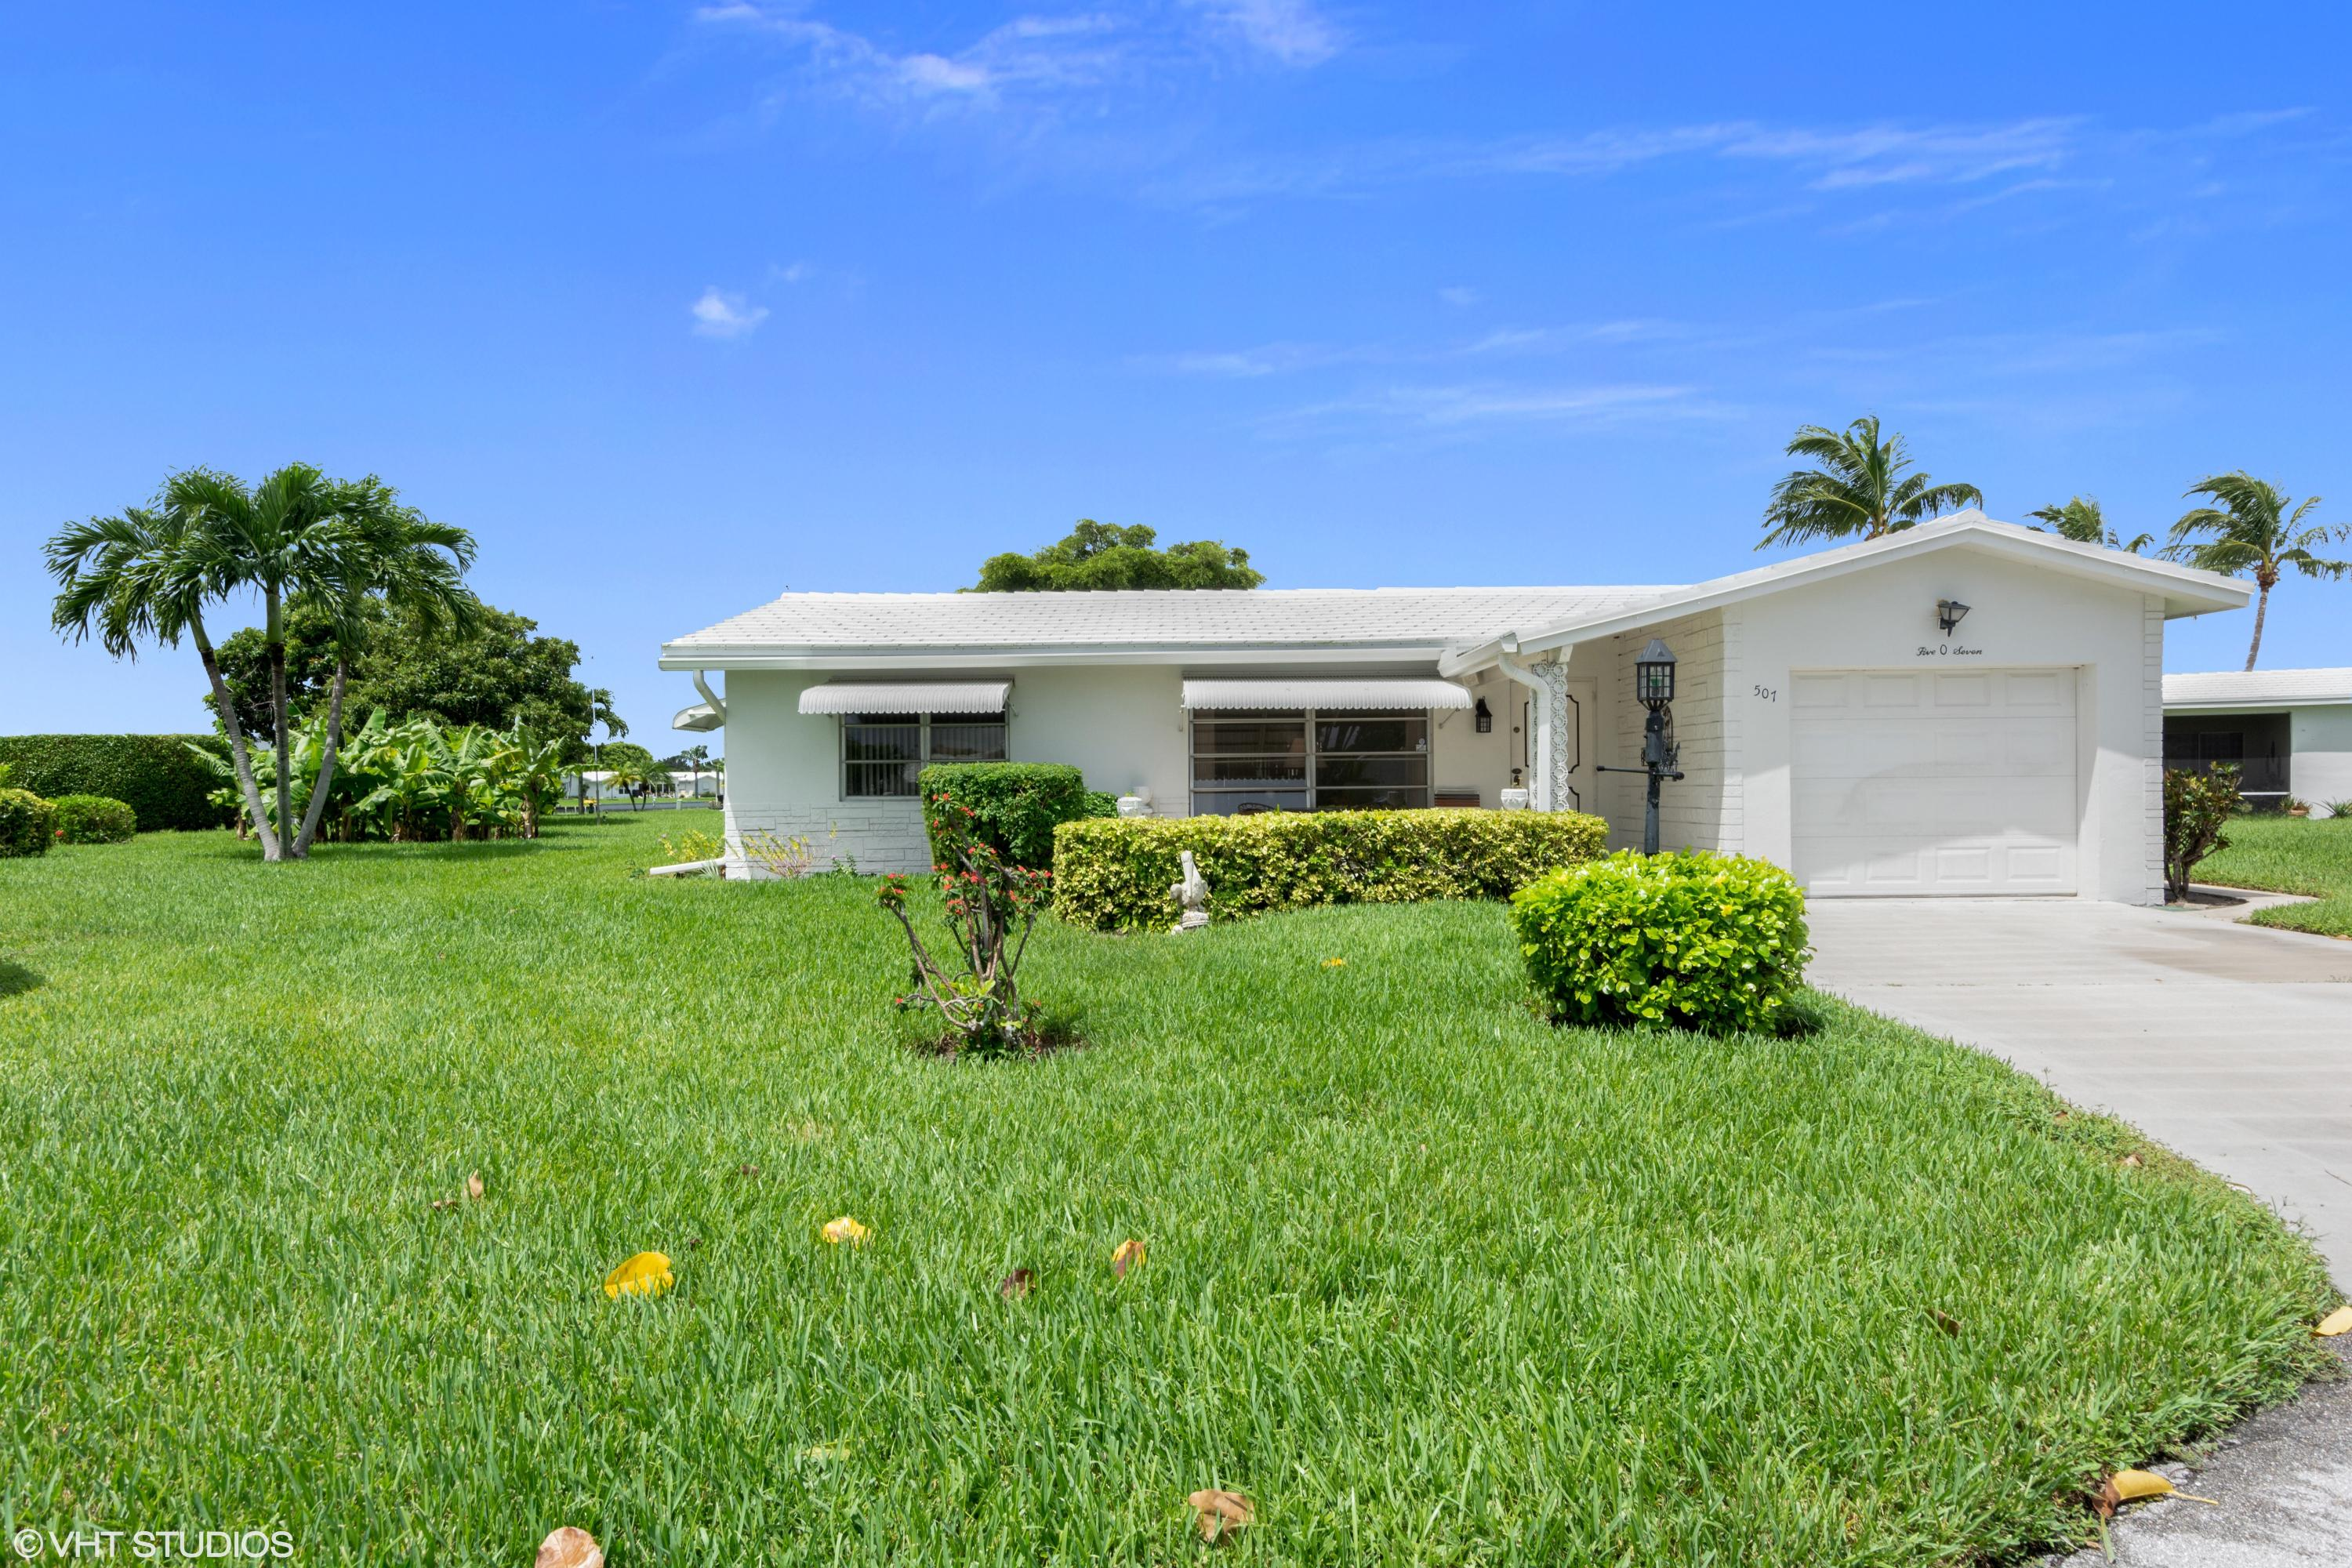 507 Canal Way Boynton Beach, FL 33426 small photo 5